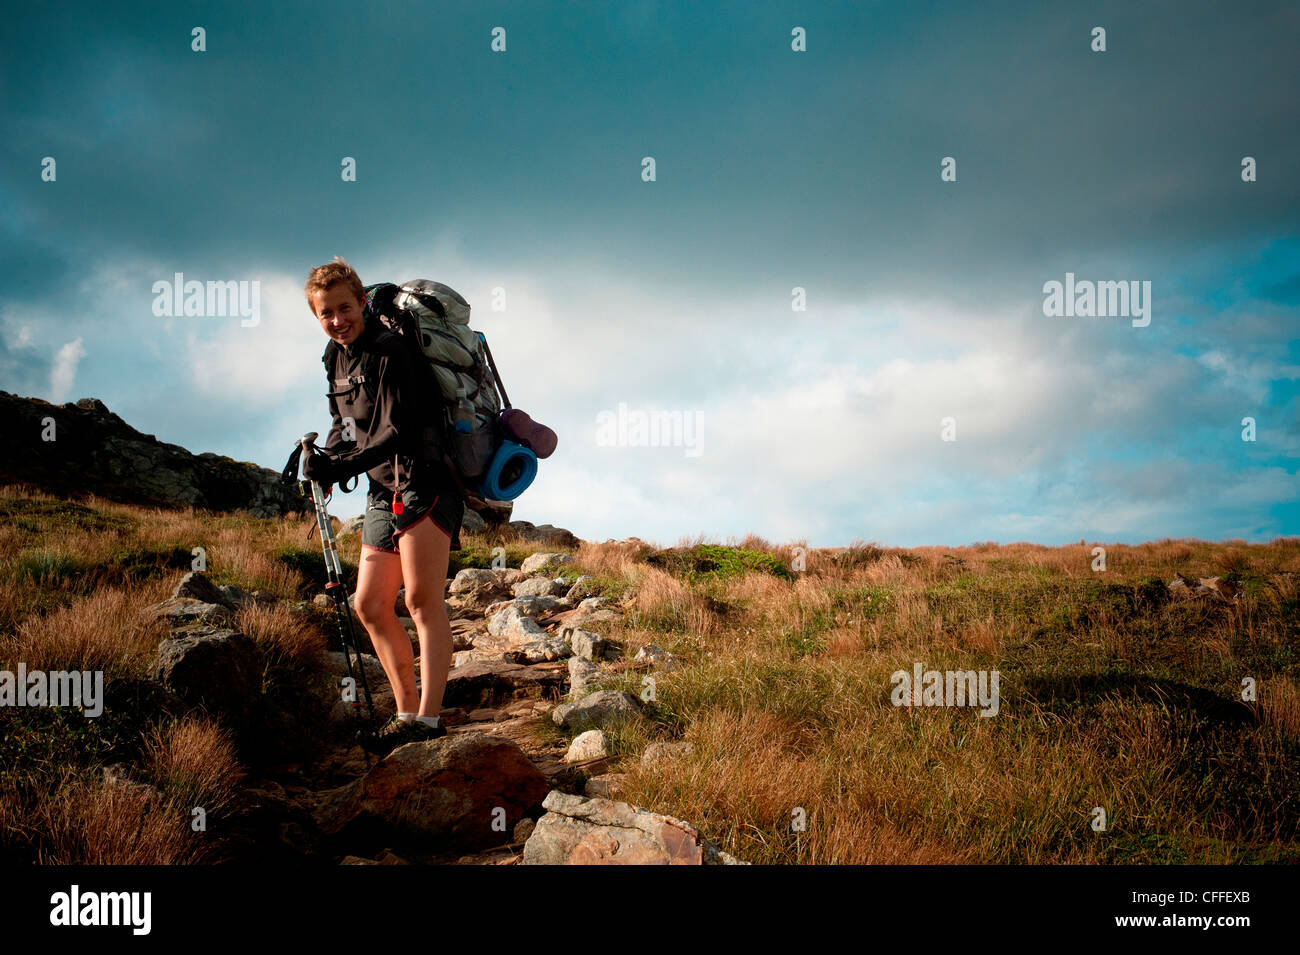 A female hiker on the Appalachian Trail. - Stock Image